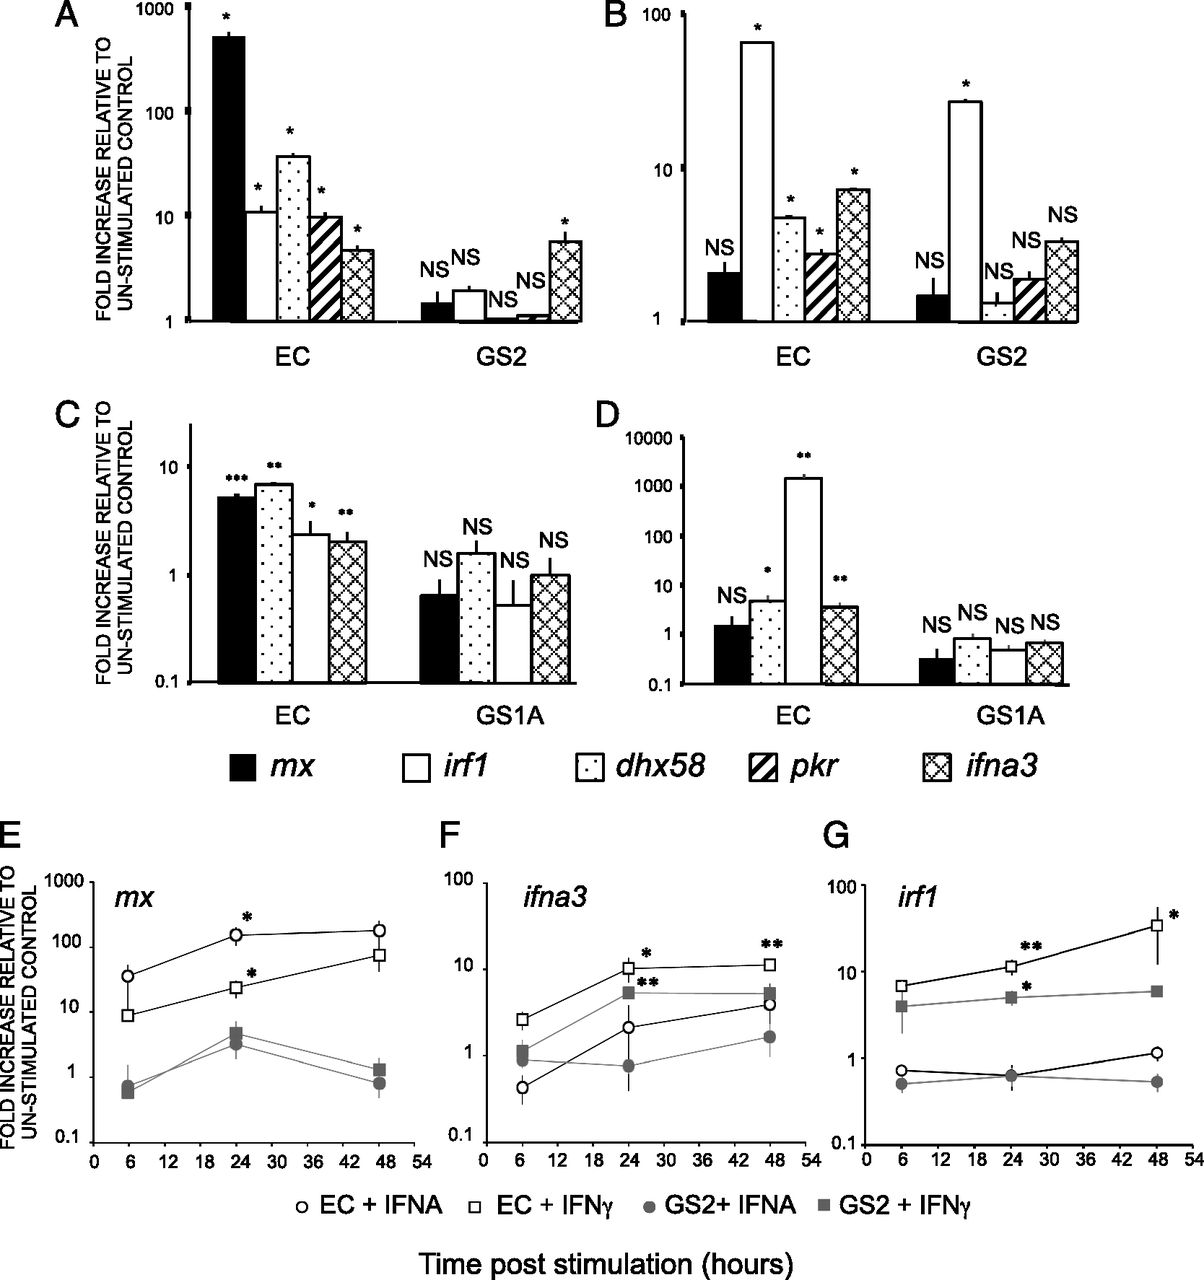 Viral Resistance and IFN Signaling in STAT2 Knockout Fish